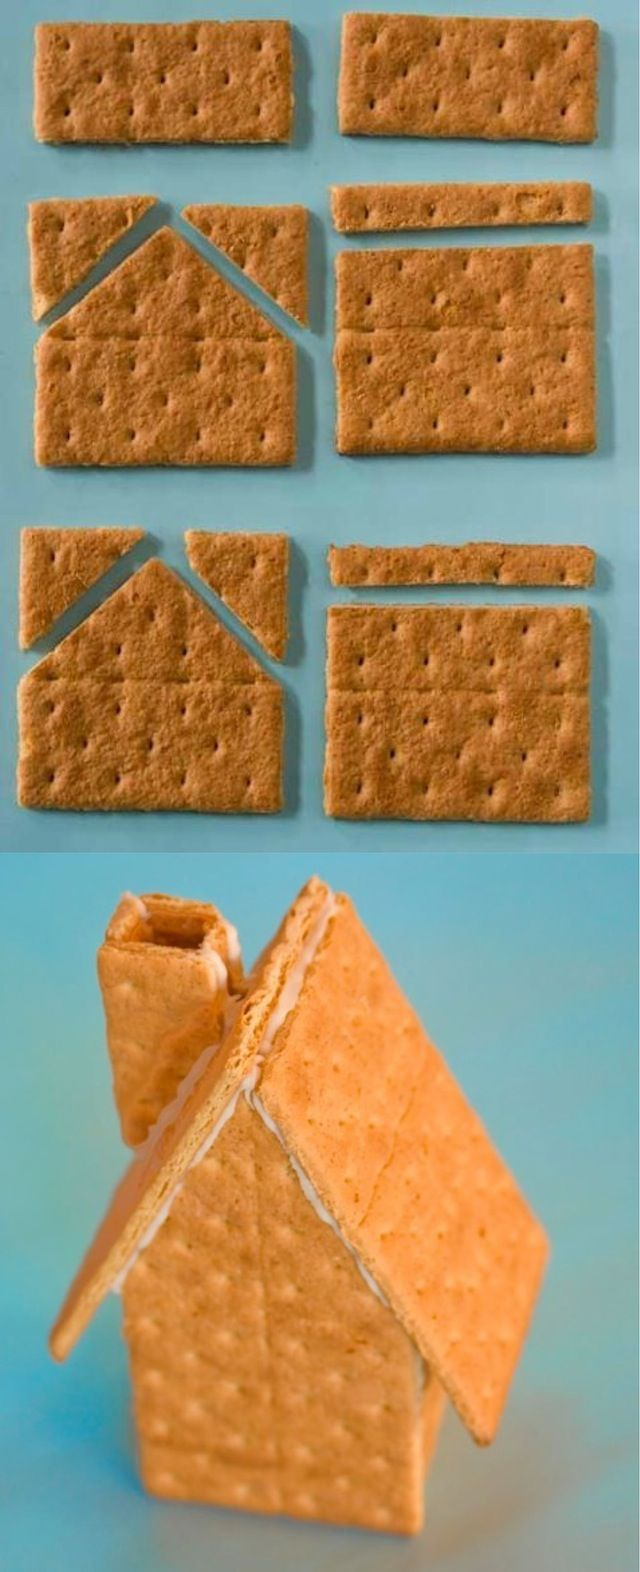 When making a gingerbread house, cut the graham crackers accordingly